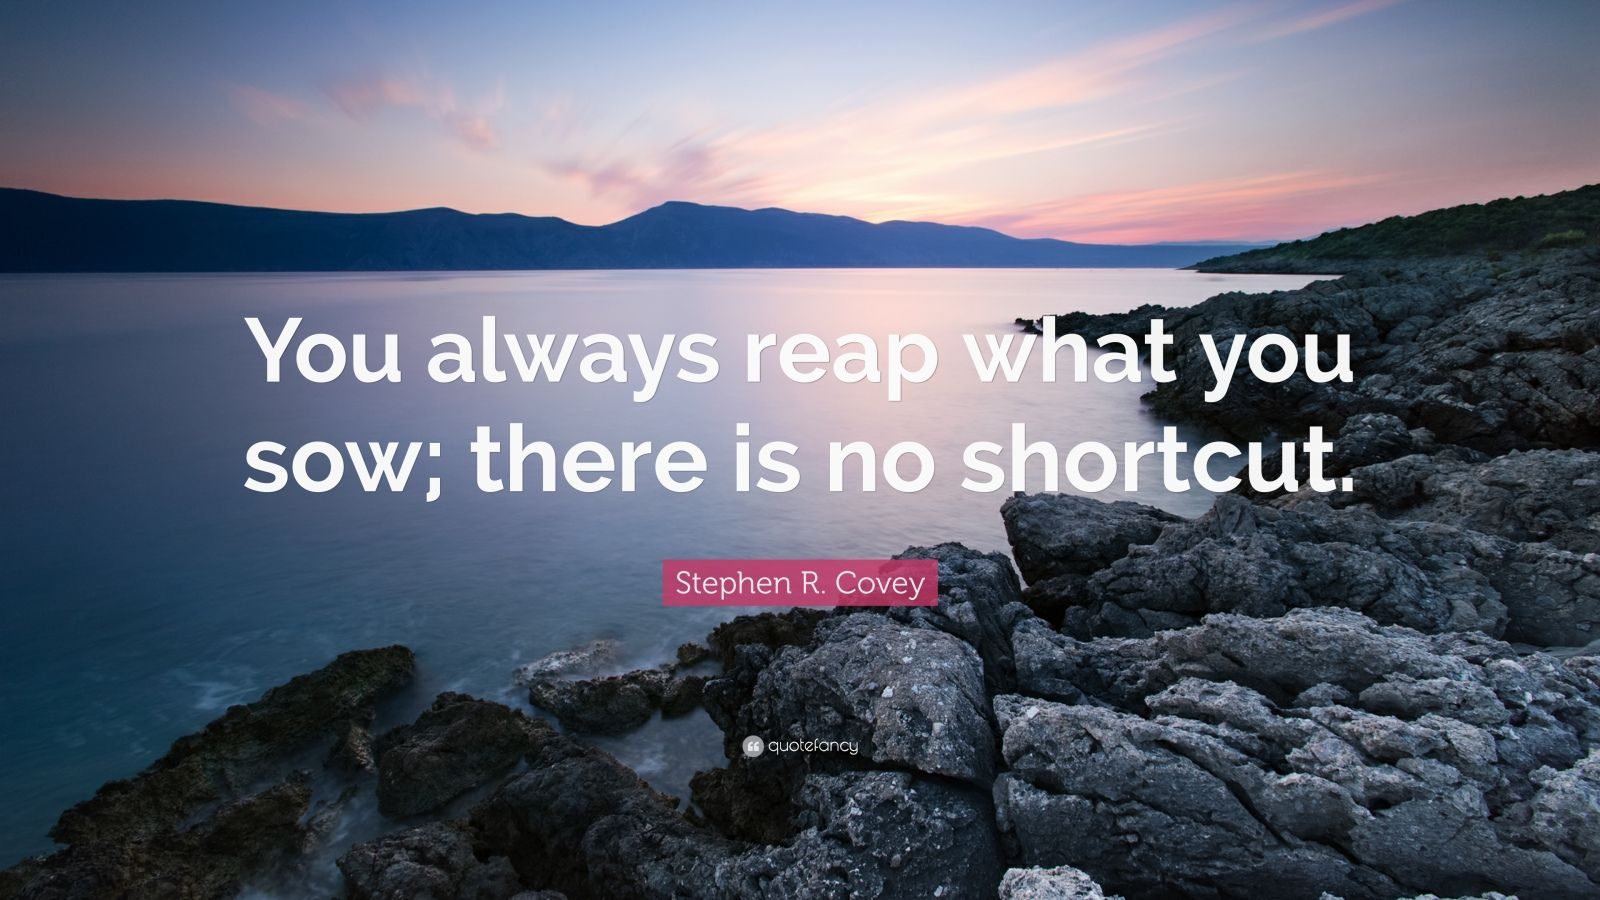 """Stephen R. Covey Quote: """"You always reap what you sow; there is no shortcut."""""""